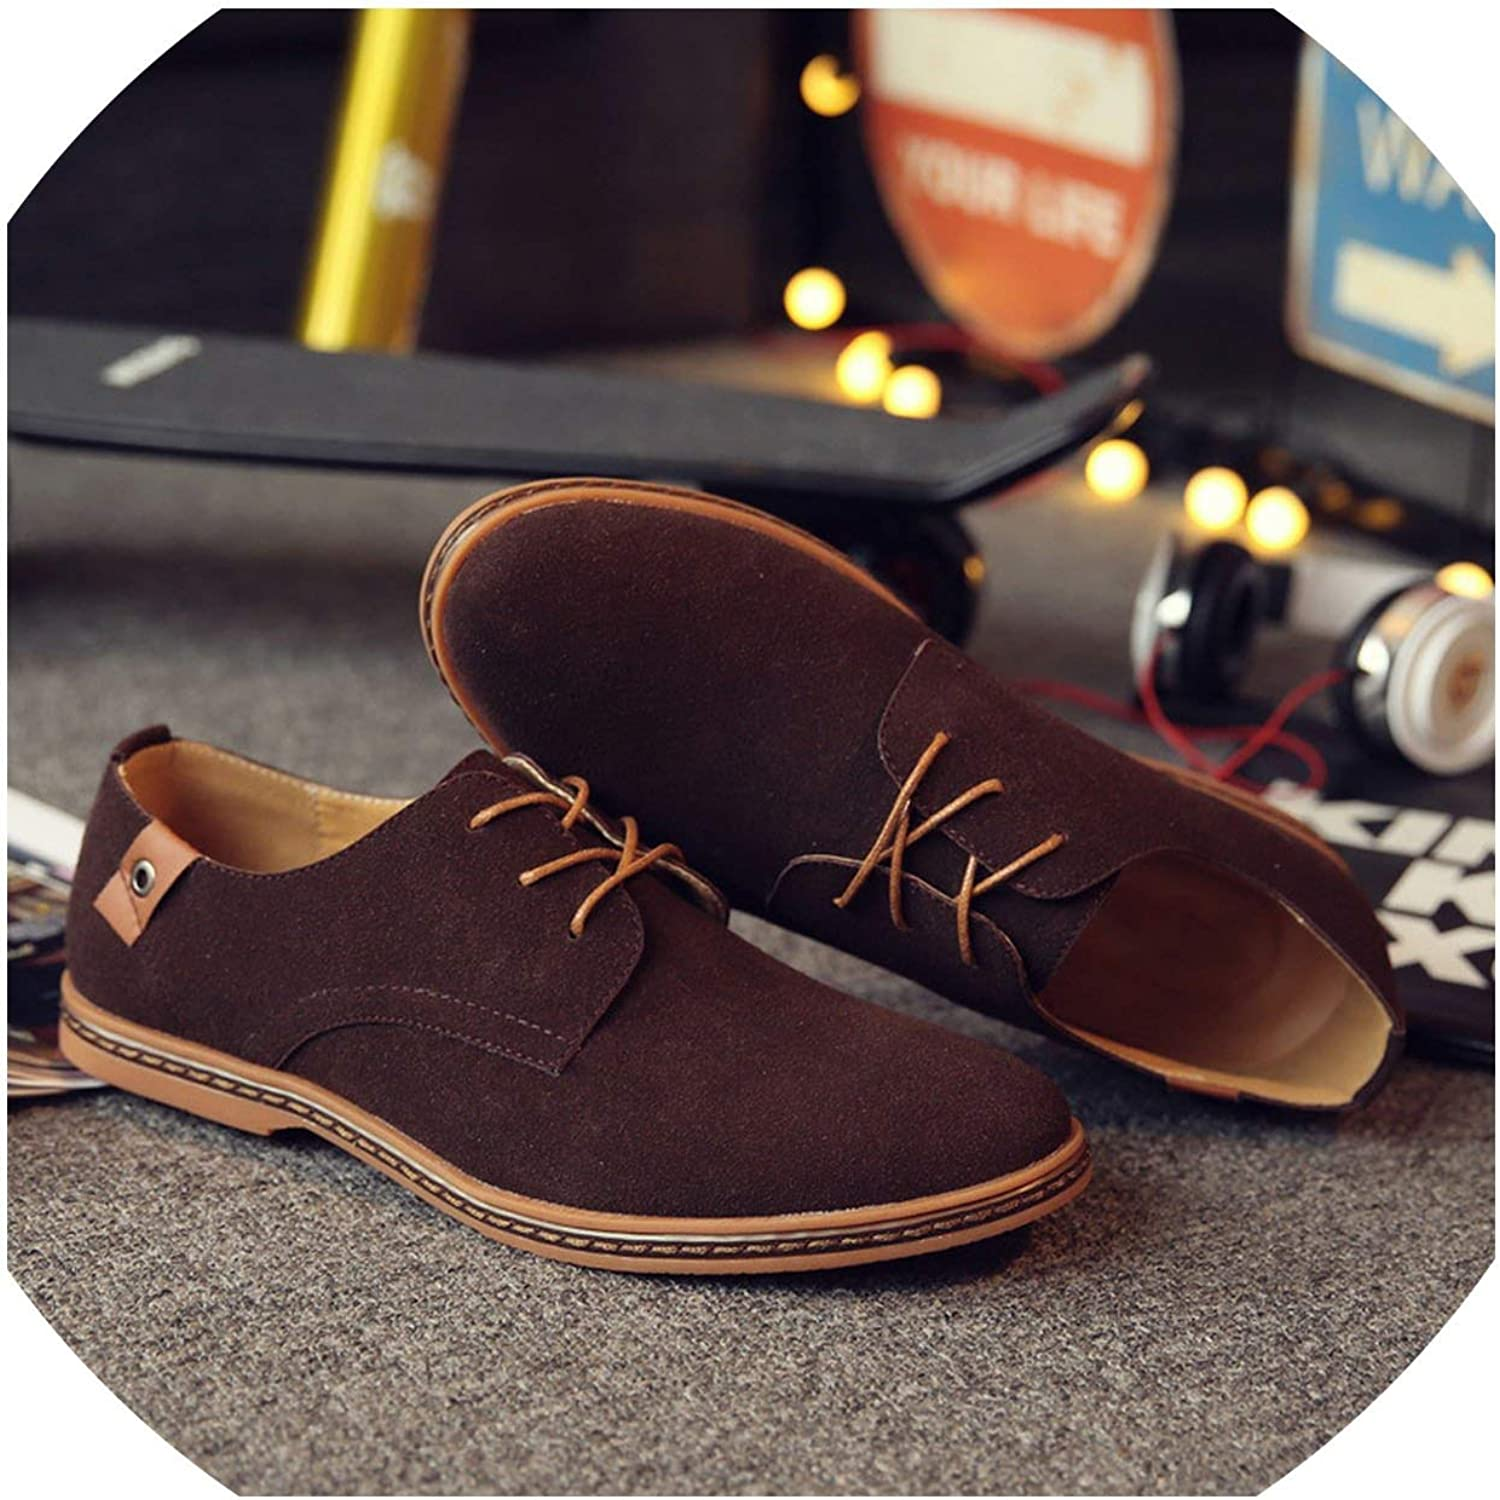 WBeauty Flats Lace Up Male Suede Oxfords Leather shoes Men's Sneakers